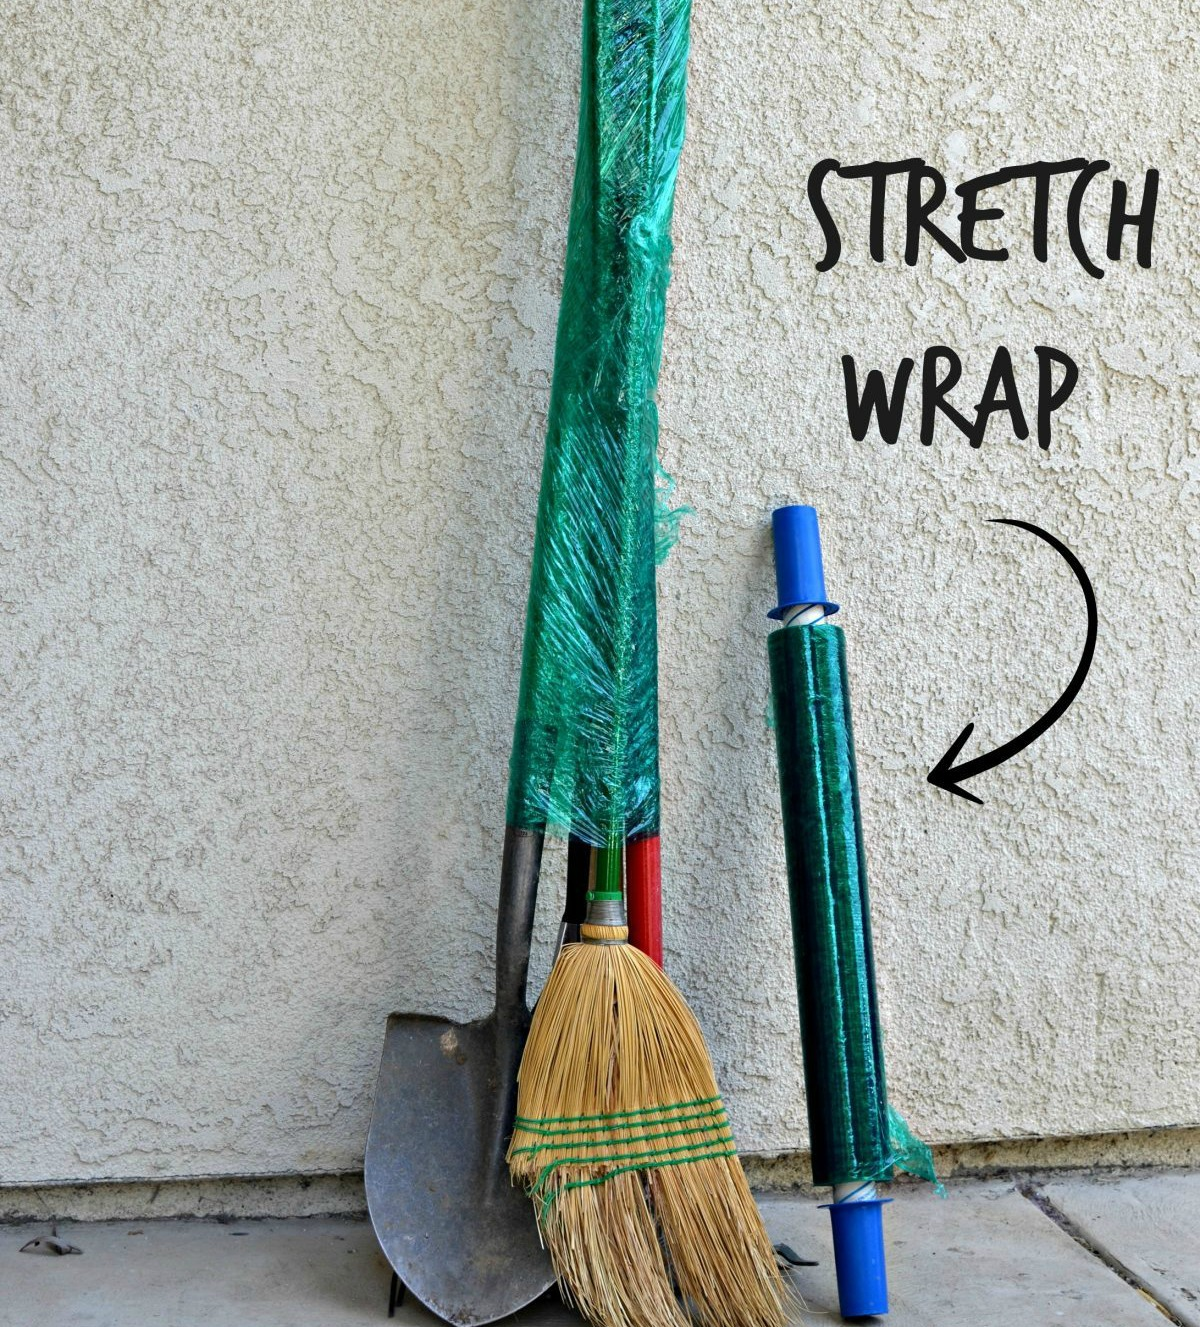 stretch wrap used around brooms and other long-handled tools